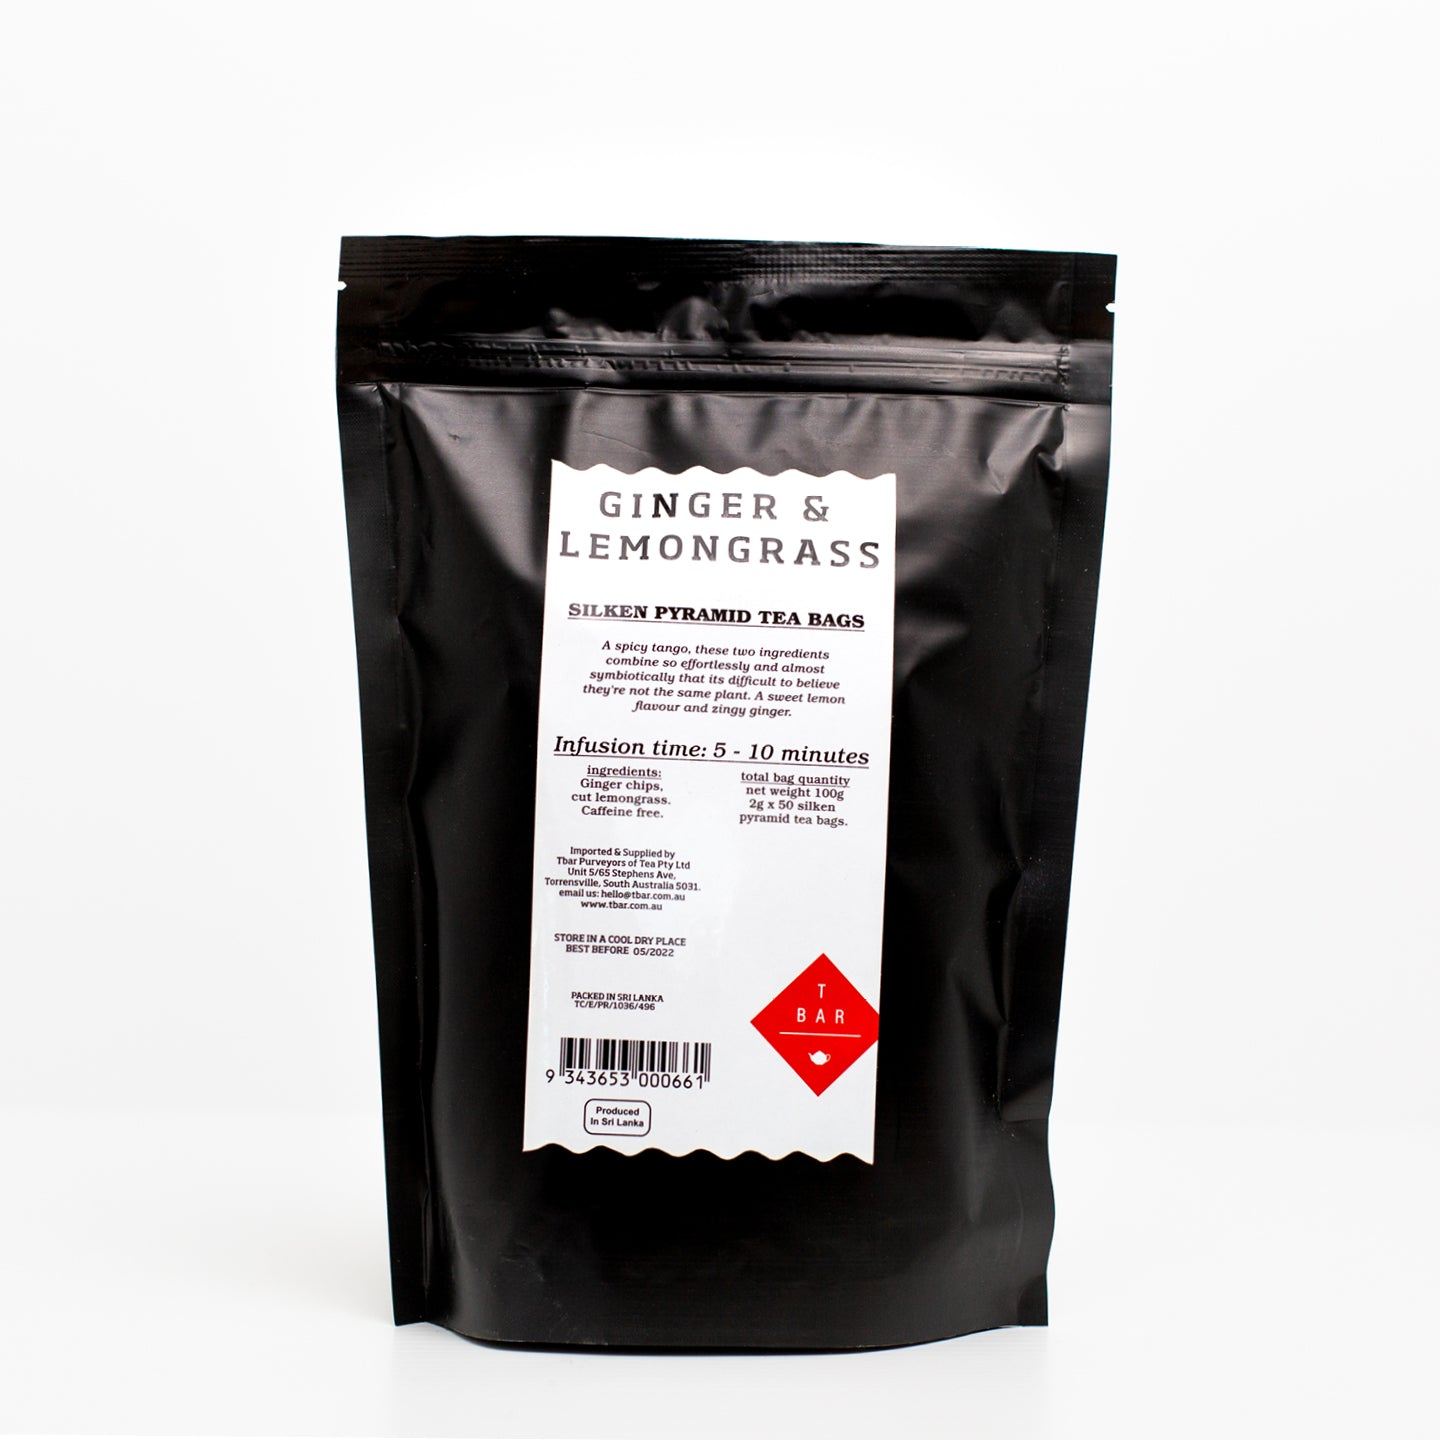 T-Bar Ginger & Lemongrass Tea Bags